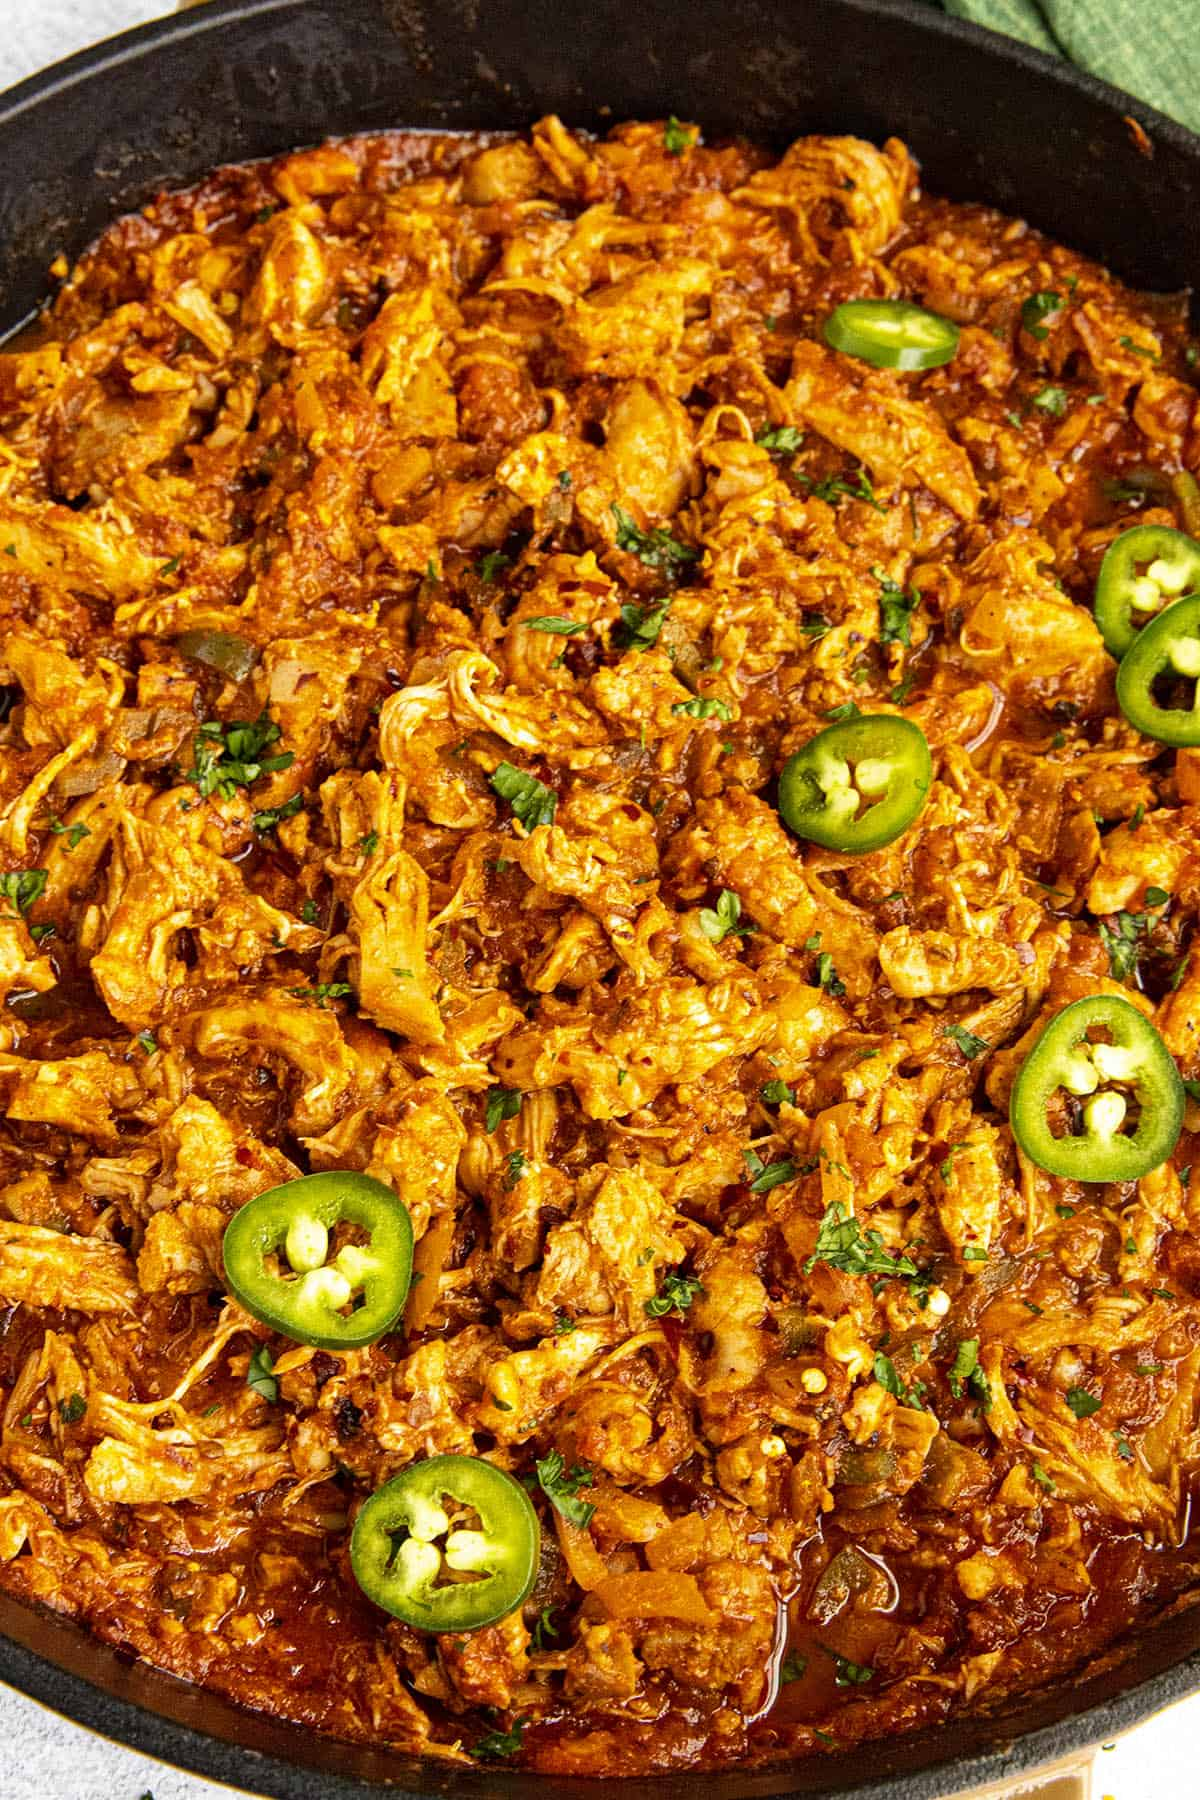 Chicken tinga garnished with sliced peppers